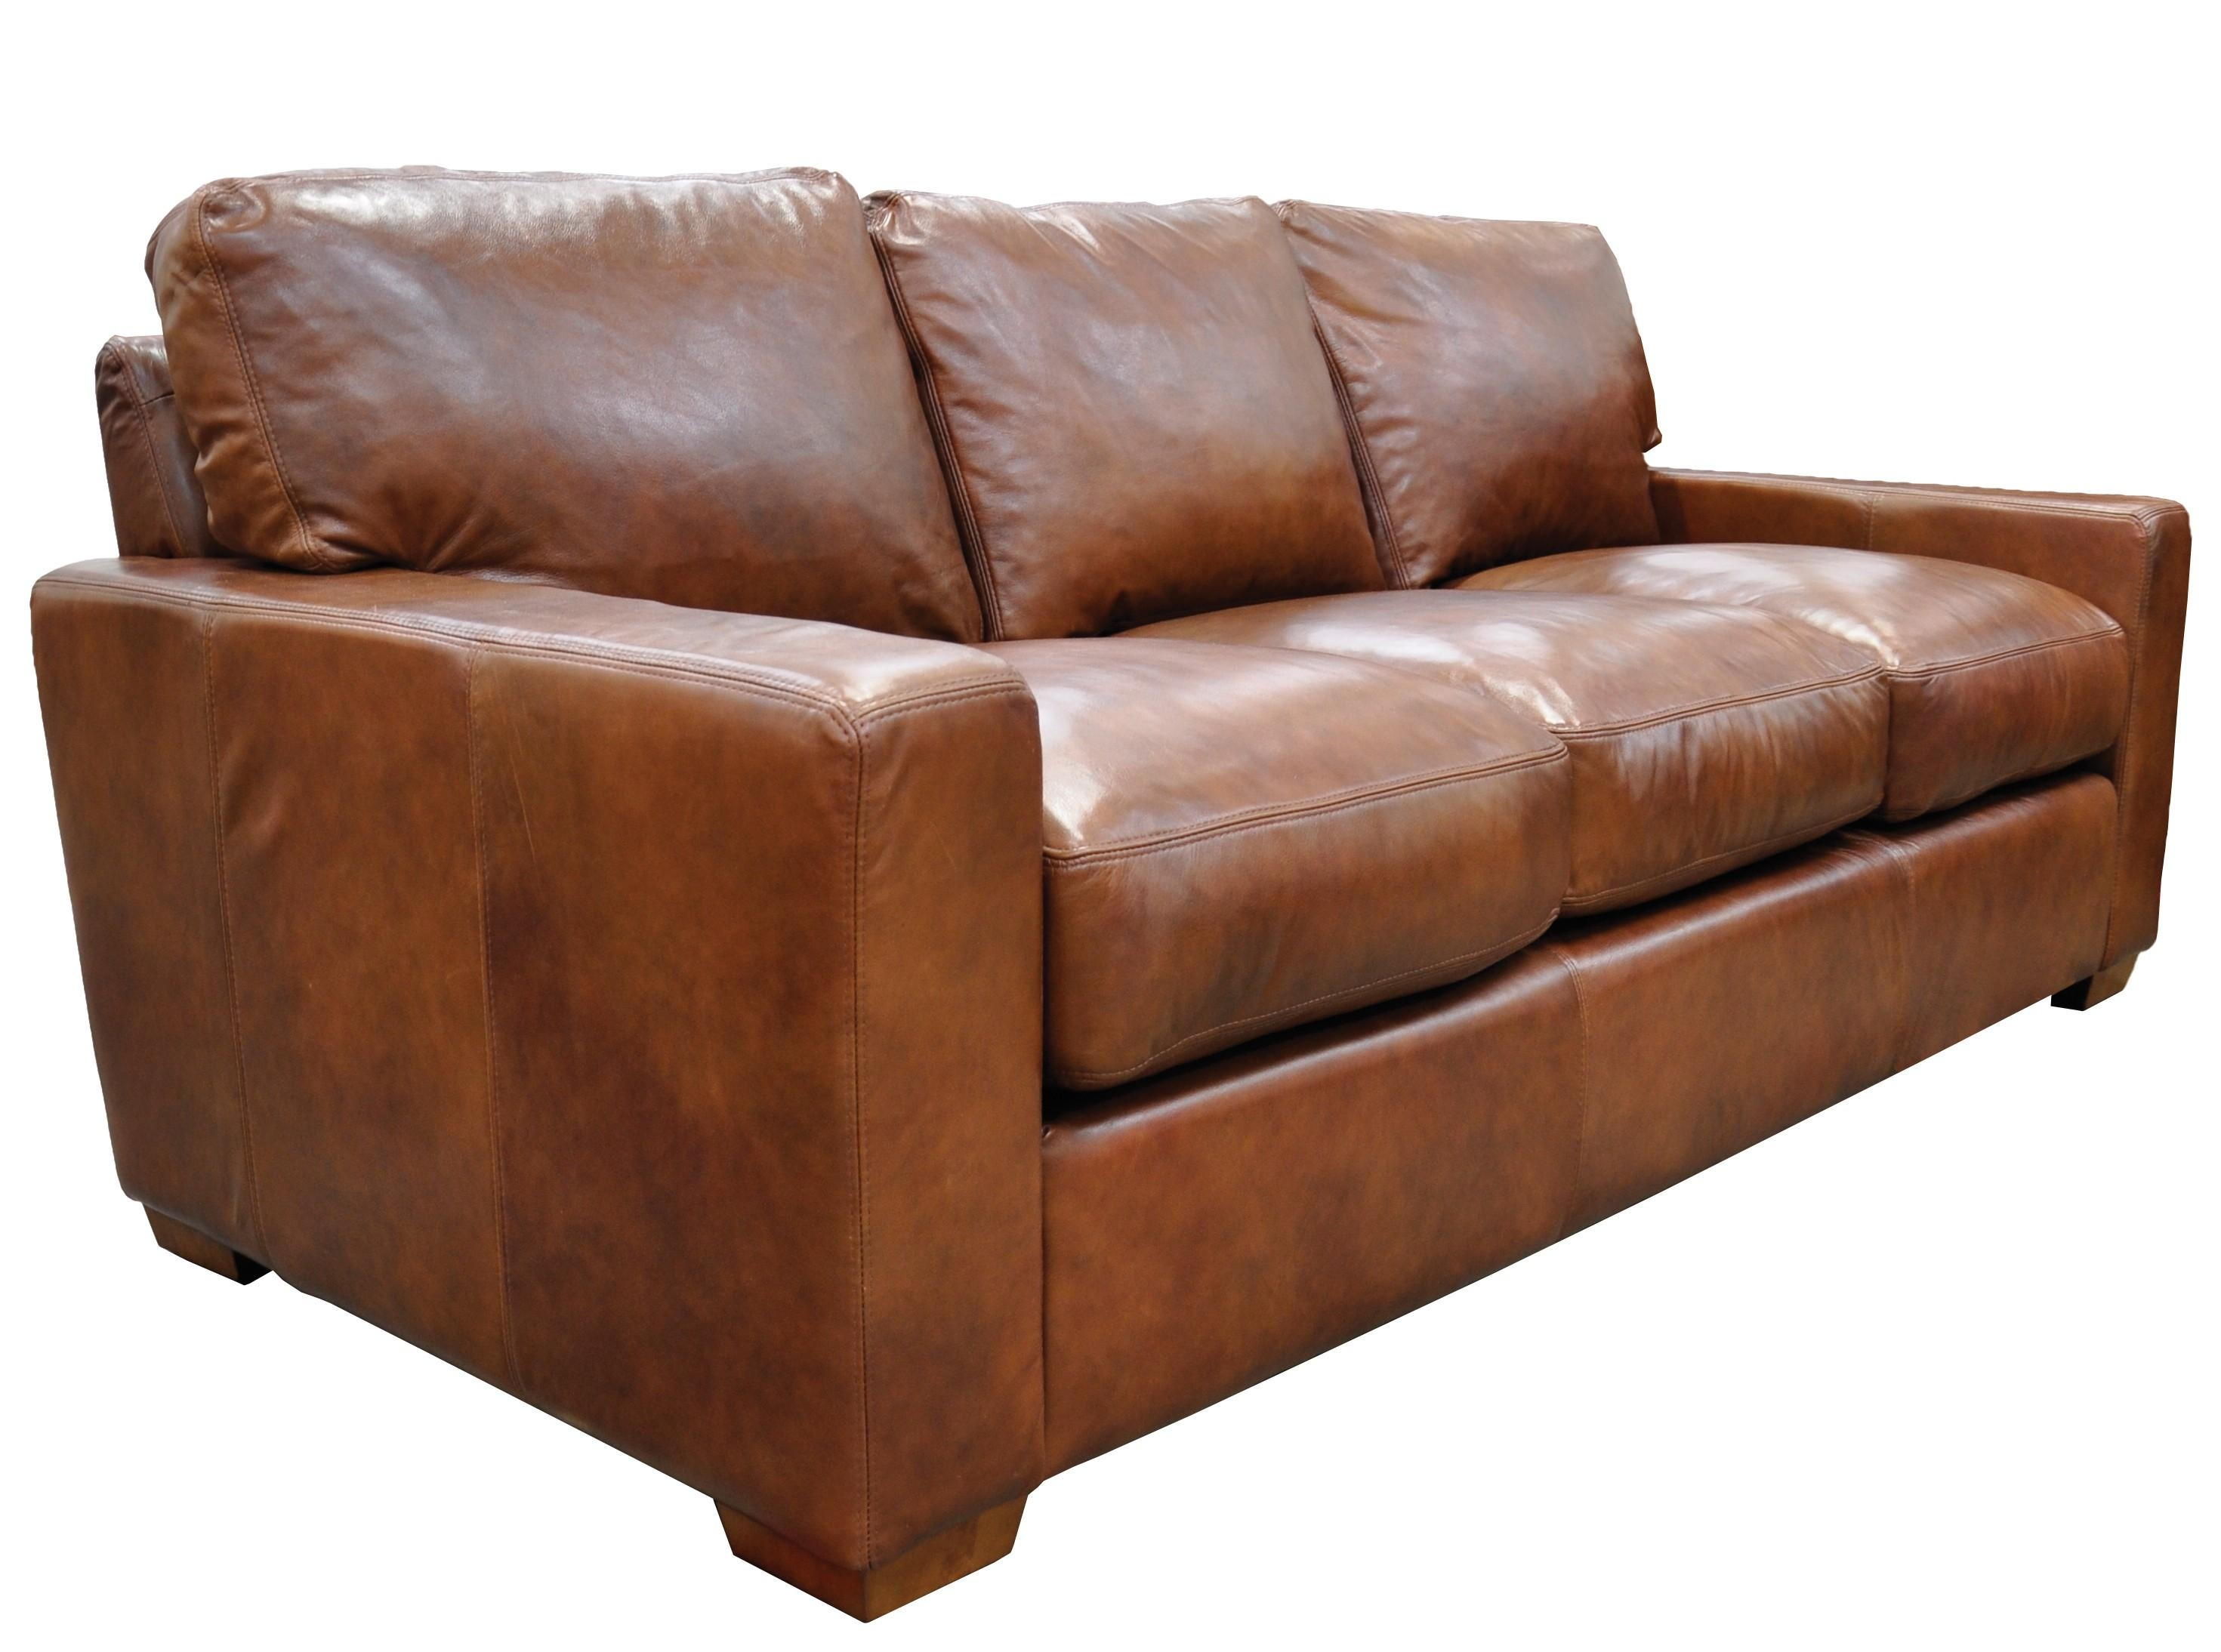 Furniture: Elegant Full Grain Leather Sofa For Luxury Living Room Inside Aniline Leather Sofas (Image 12 of 20)